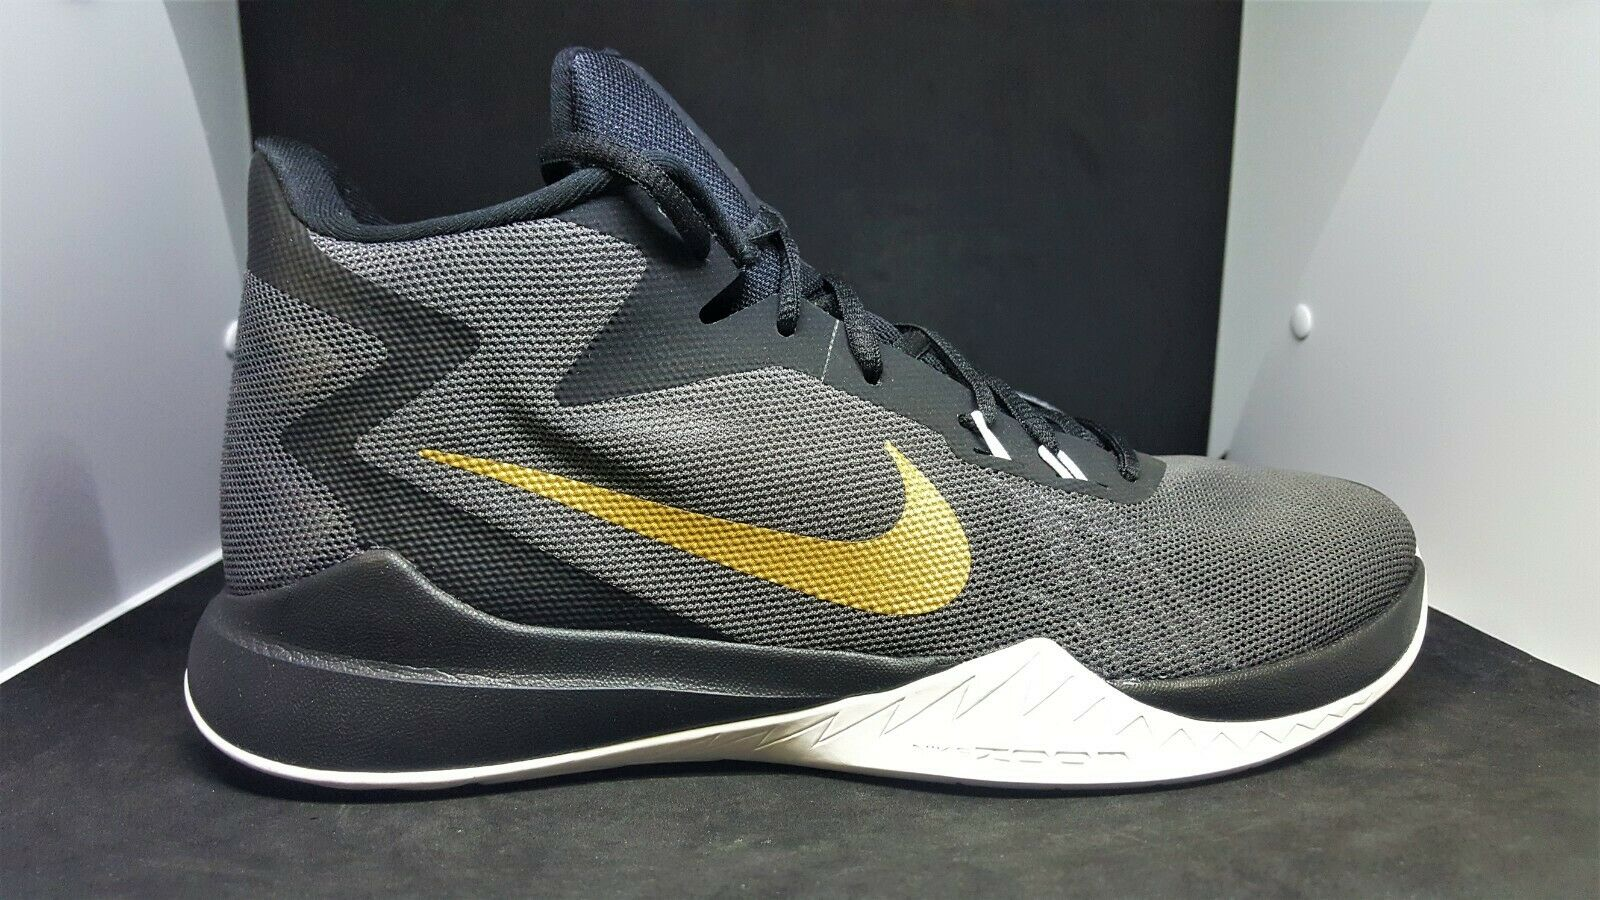 Nike Zoom Evidence Mens Basketball shoes Anthracite gold  852464-005 size 8.5